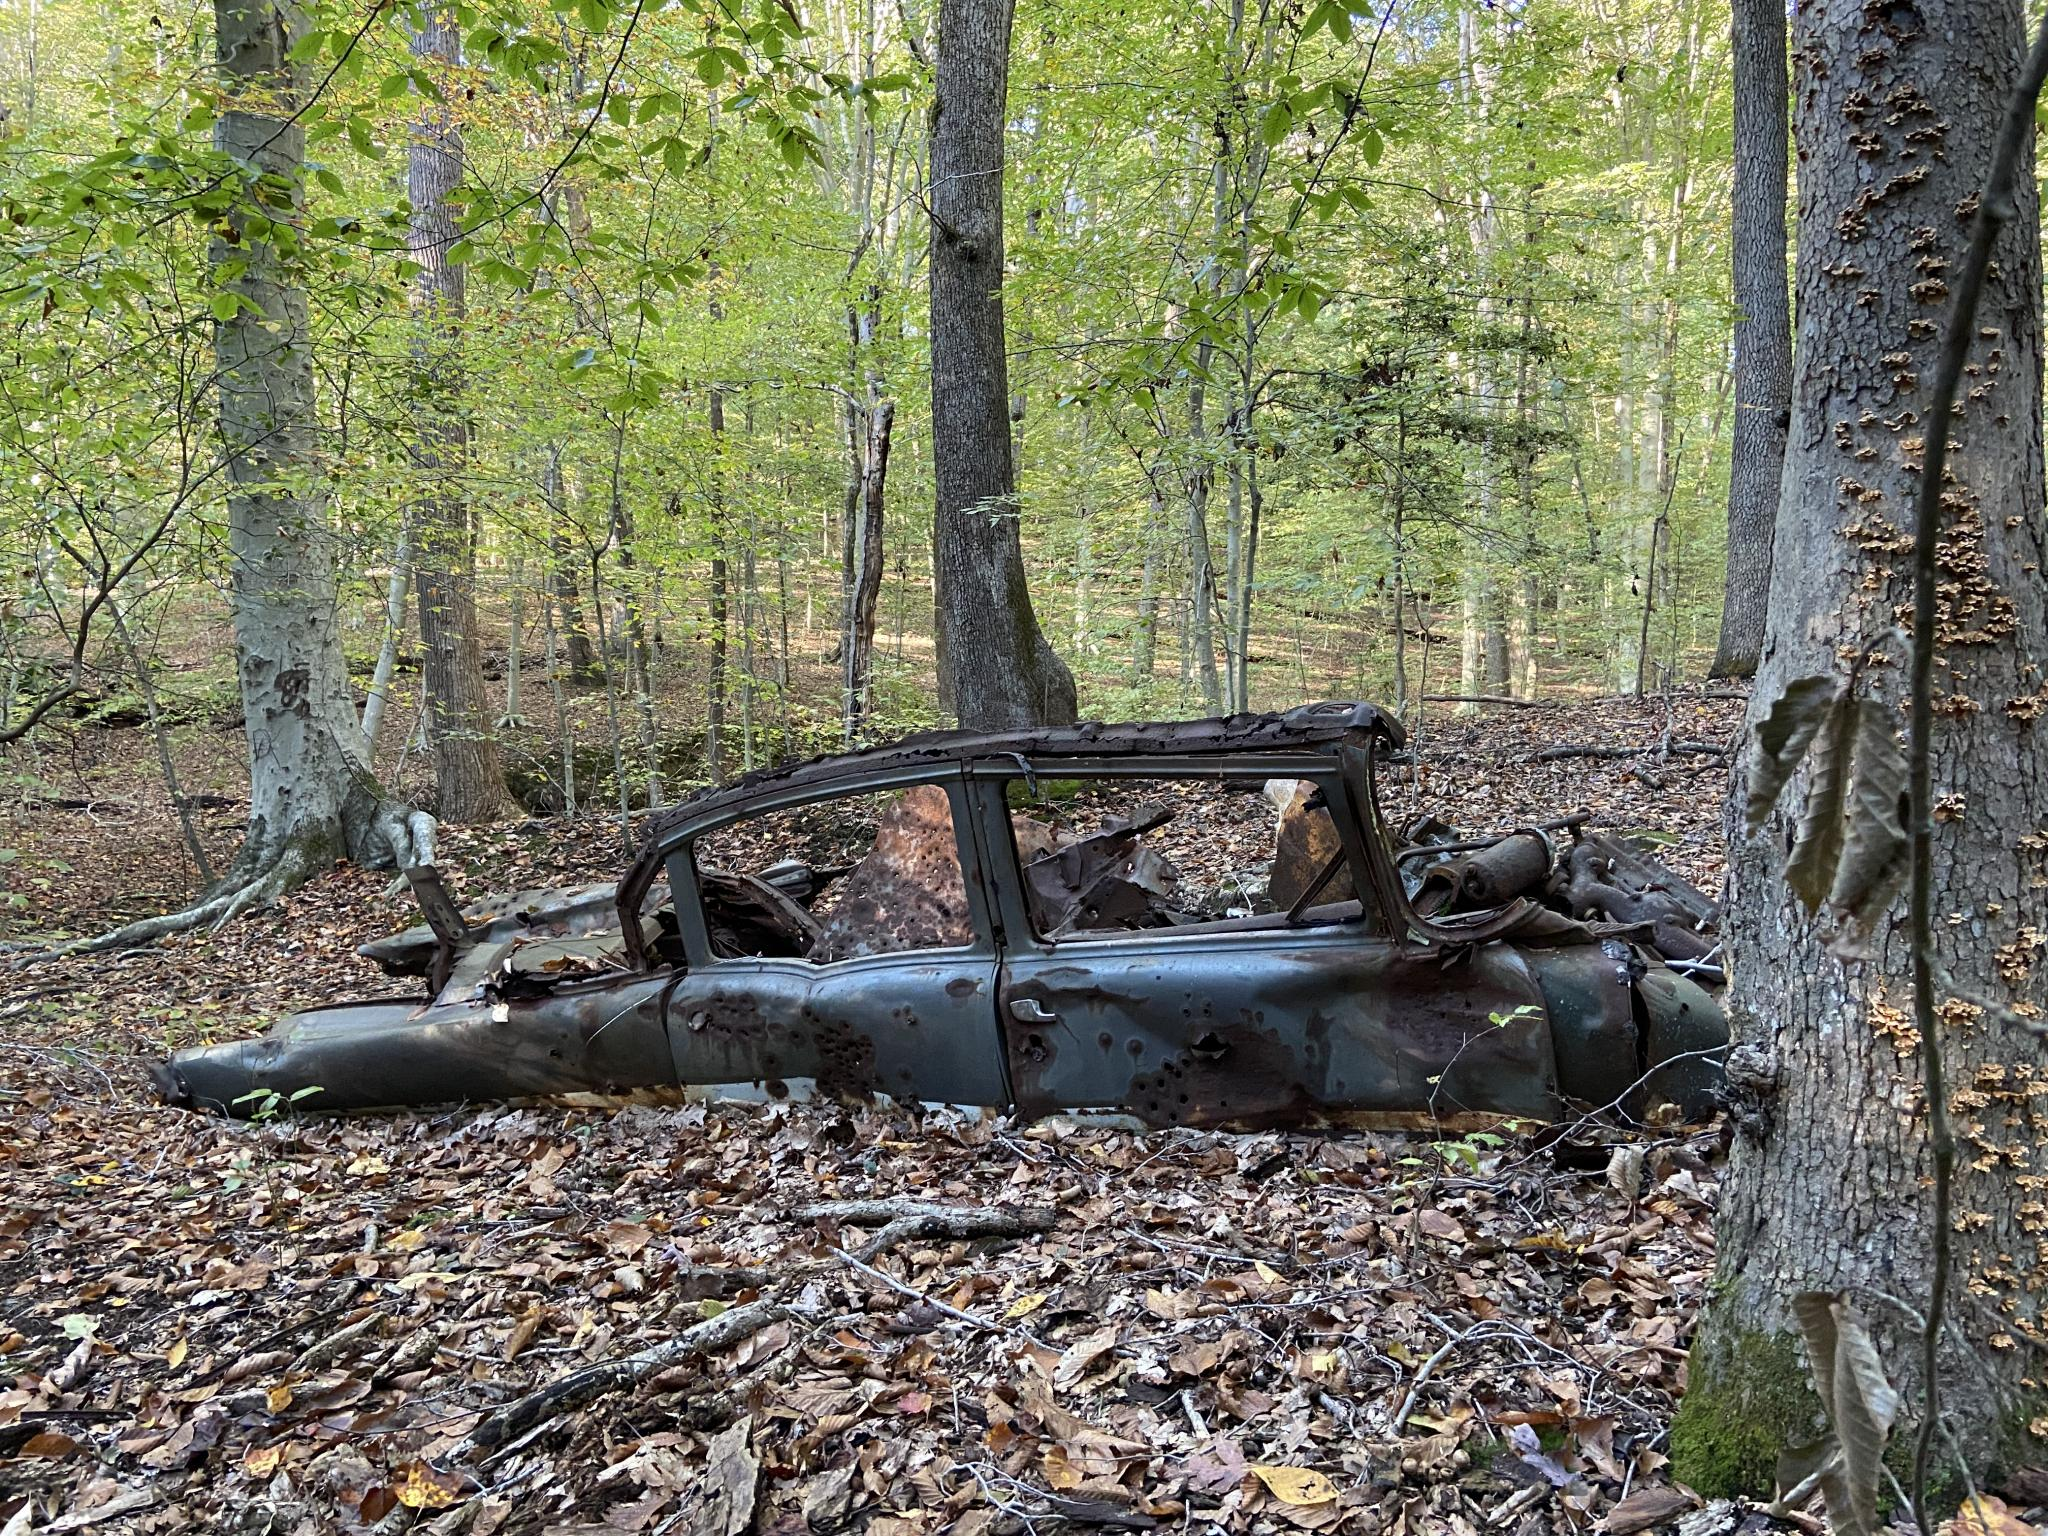 Abandoned cars picture thread-img_8287-jpg